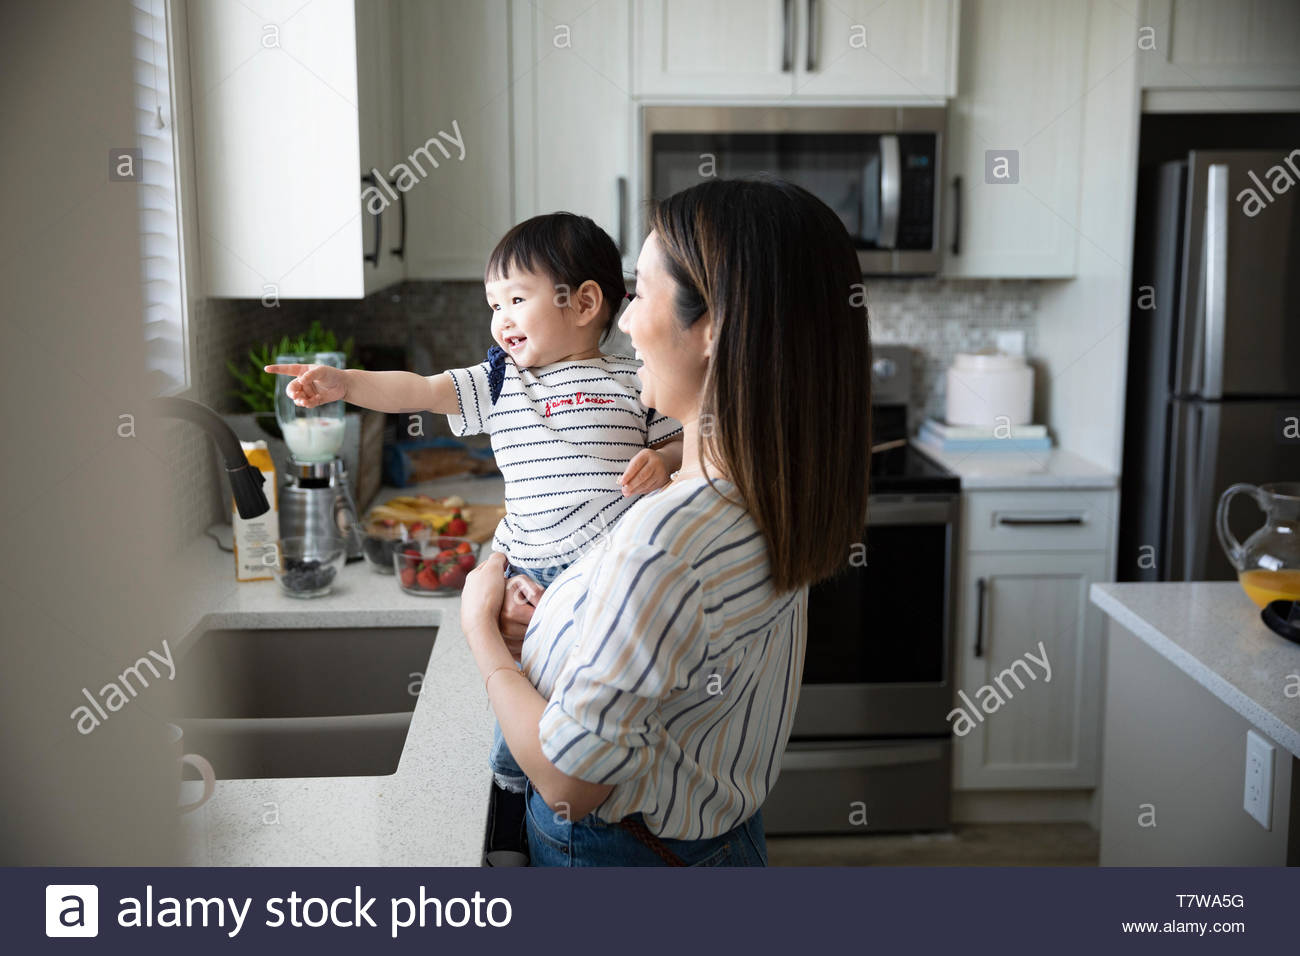 Mother and cute toddler daughter in kitchen - Stock Image